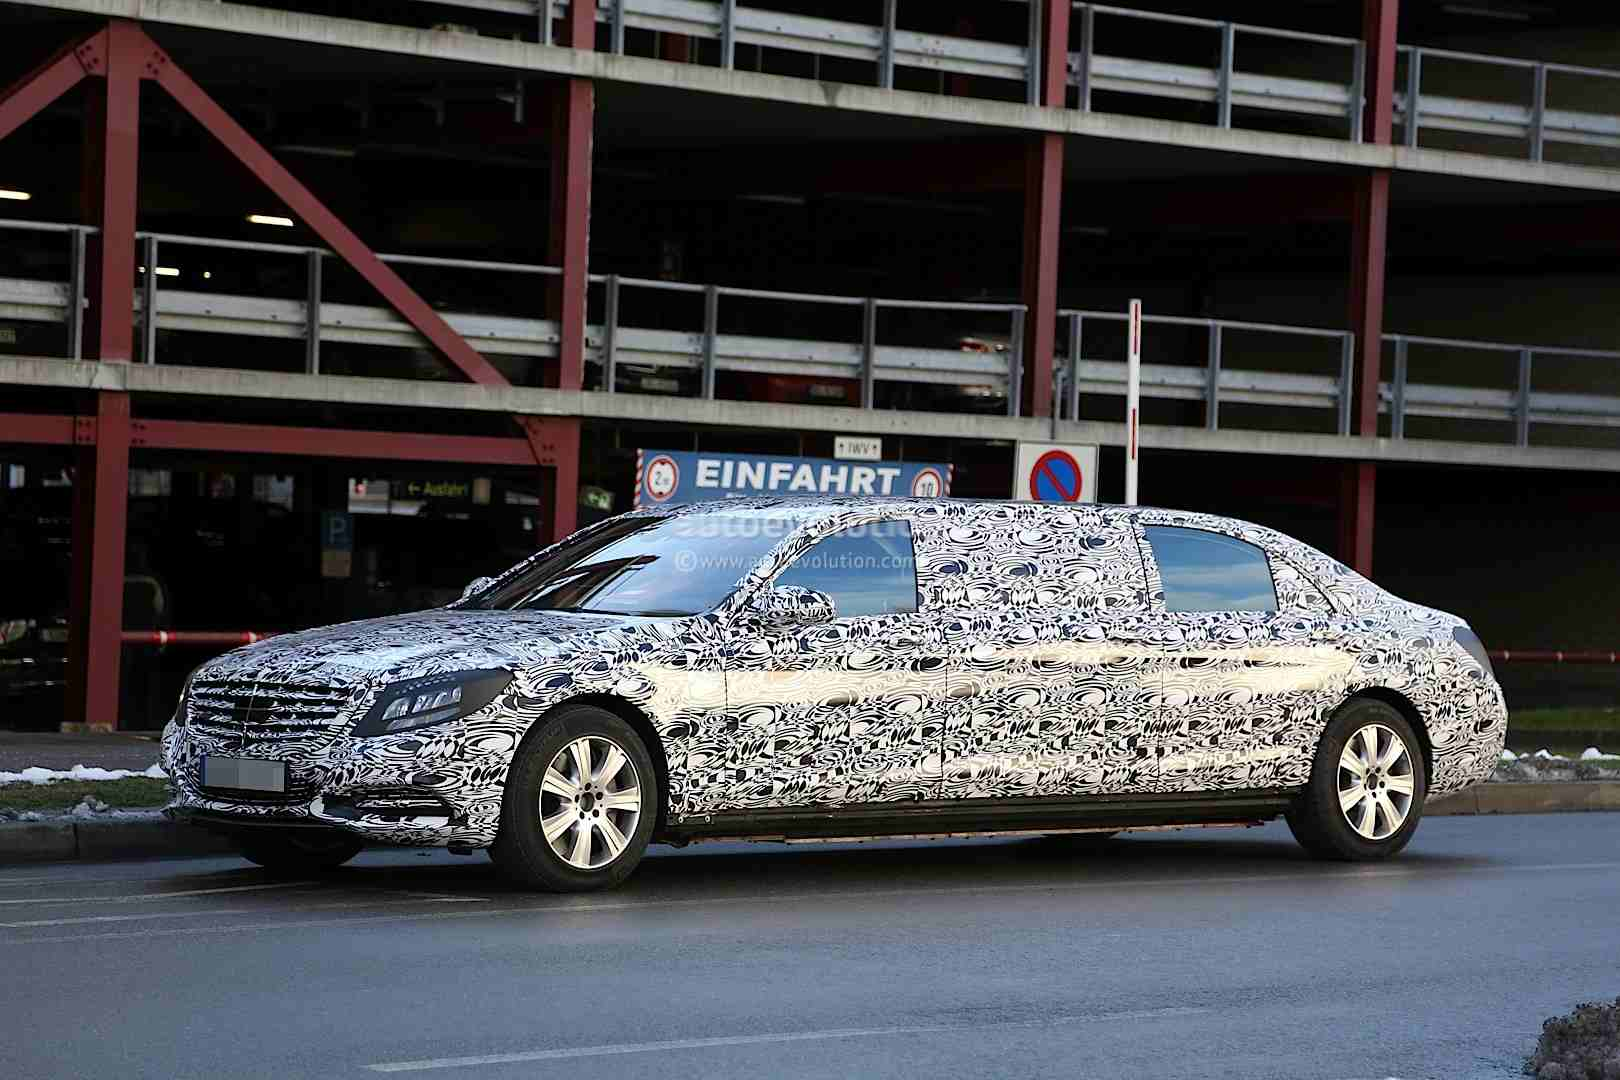 Mercedes s600 pullman spy shots show interior of the car for Mercedes benz pullman